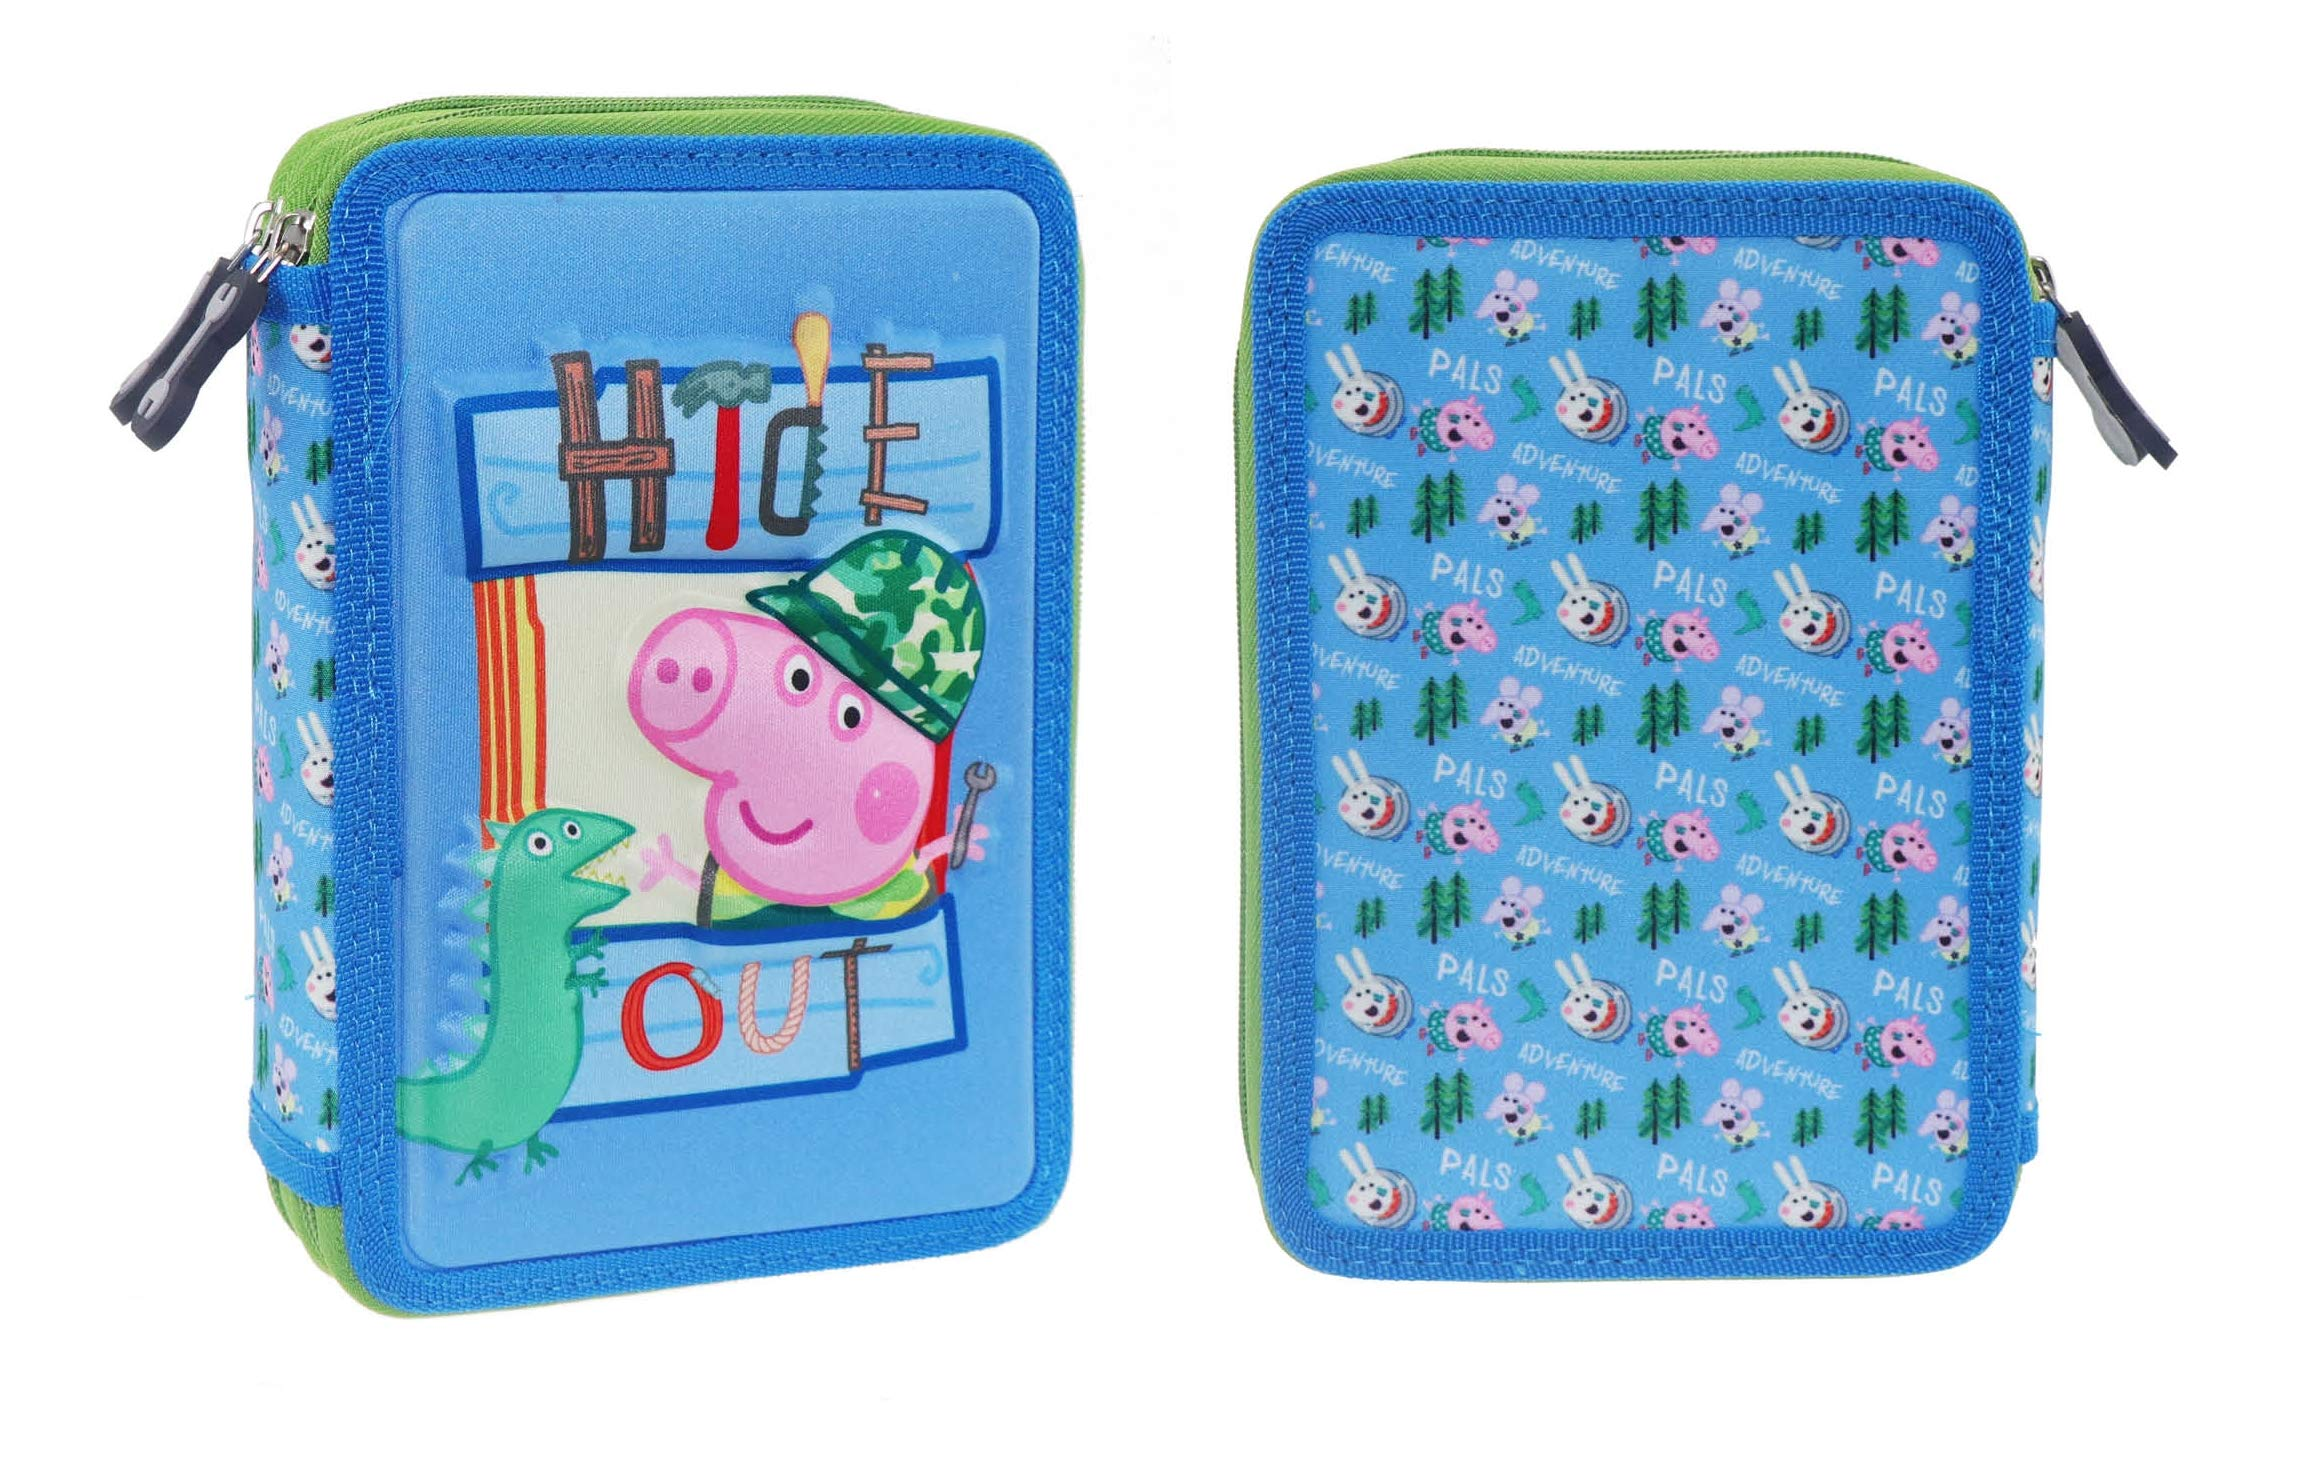 Peppa Pig- Estuches Unisex Adulto Plumier Doble 482428 George 15x5x21 cms,, Talla única (Factory CR 1)